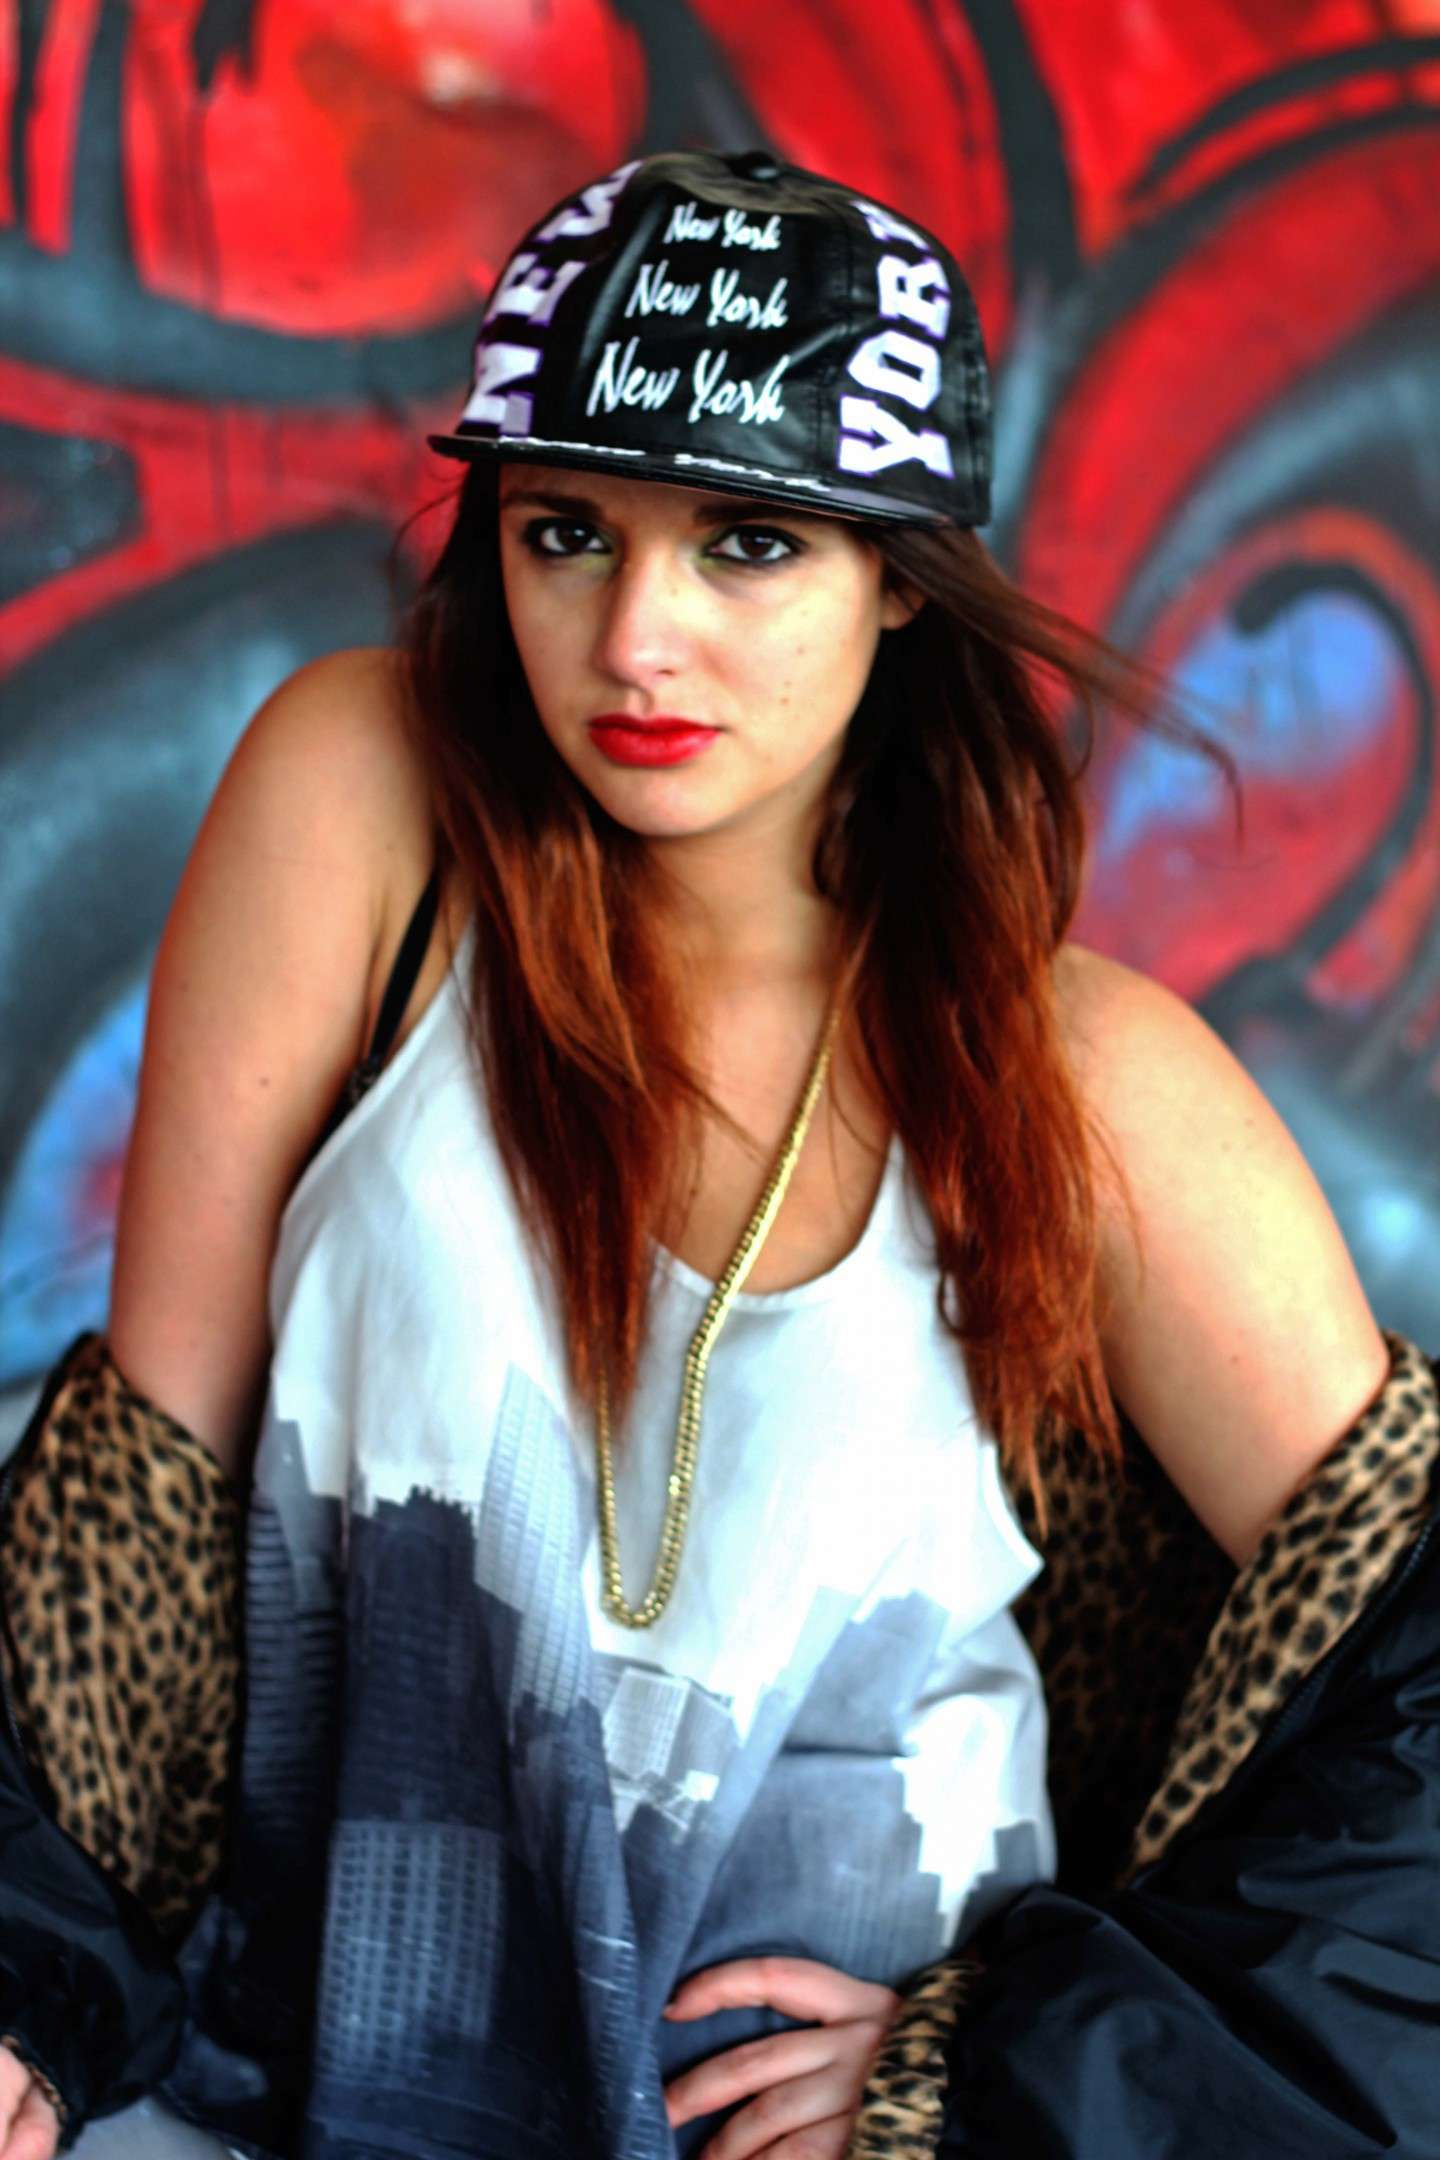 Cappello e accessori hip hop